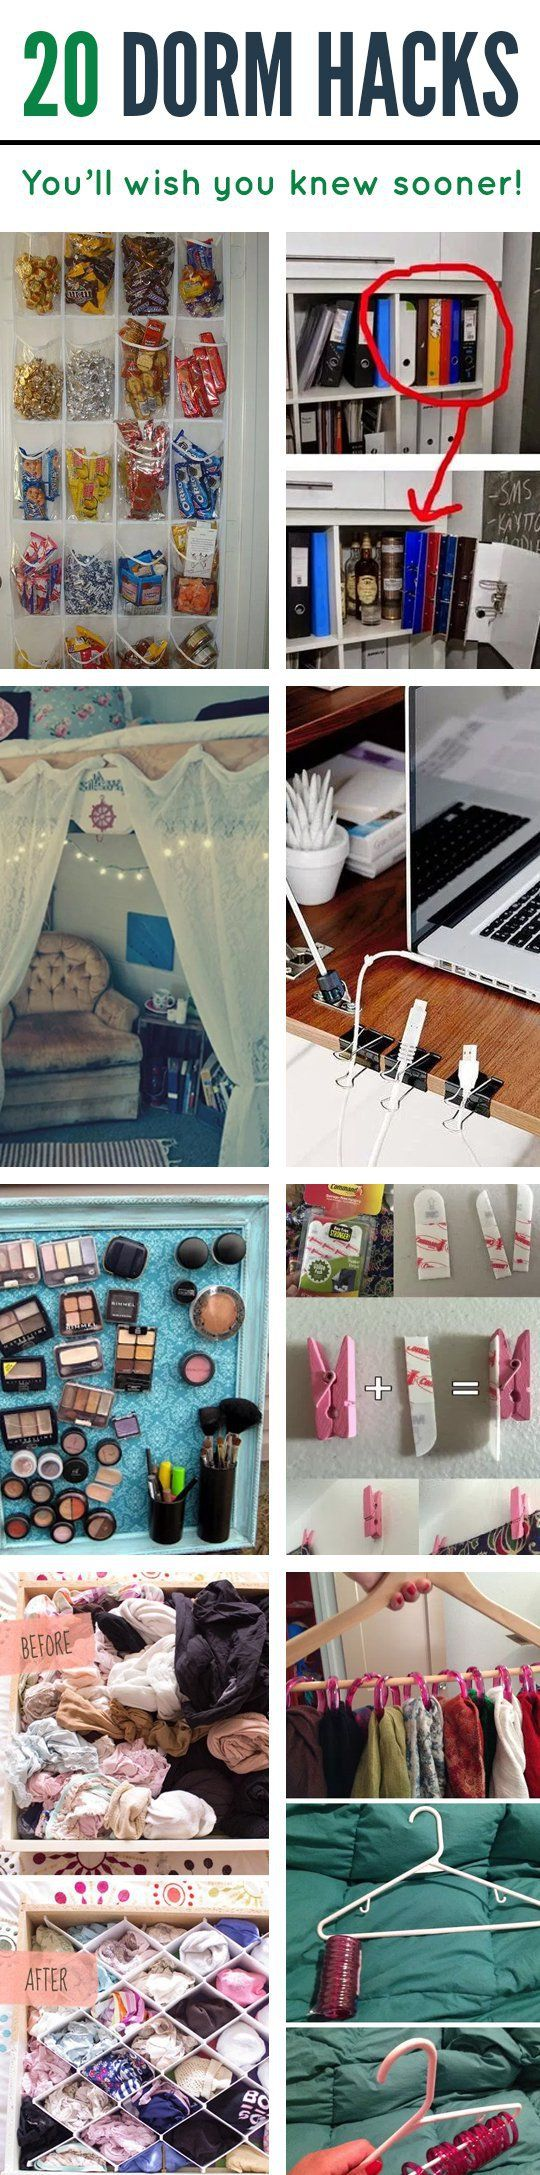 20 Dorm Hacks You'll Wish You Knew Sooner